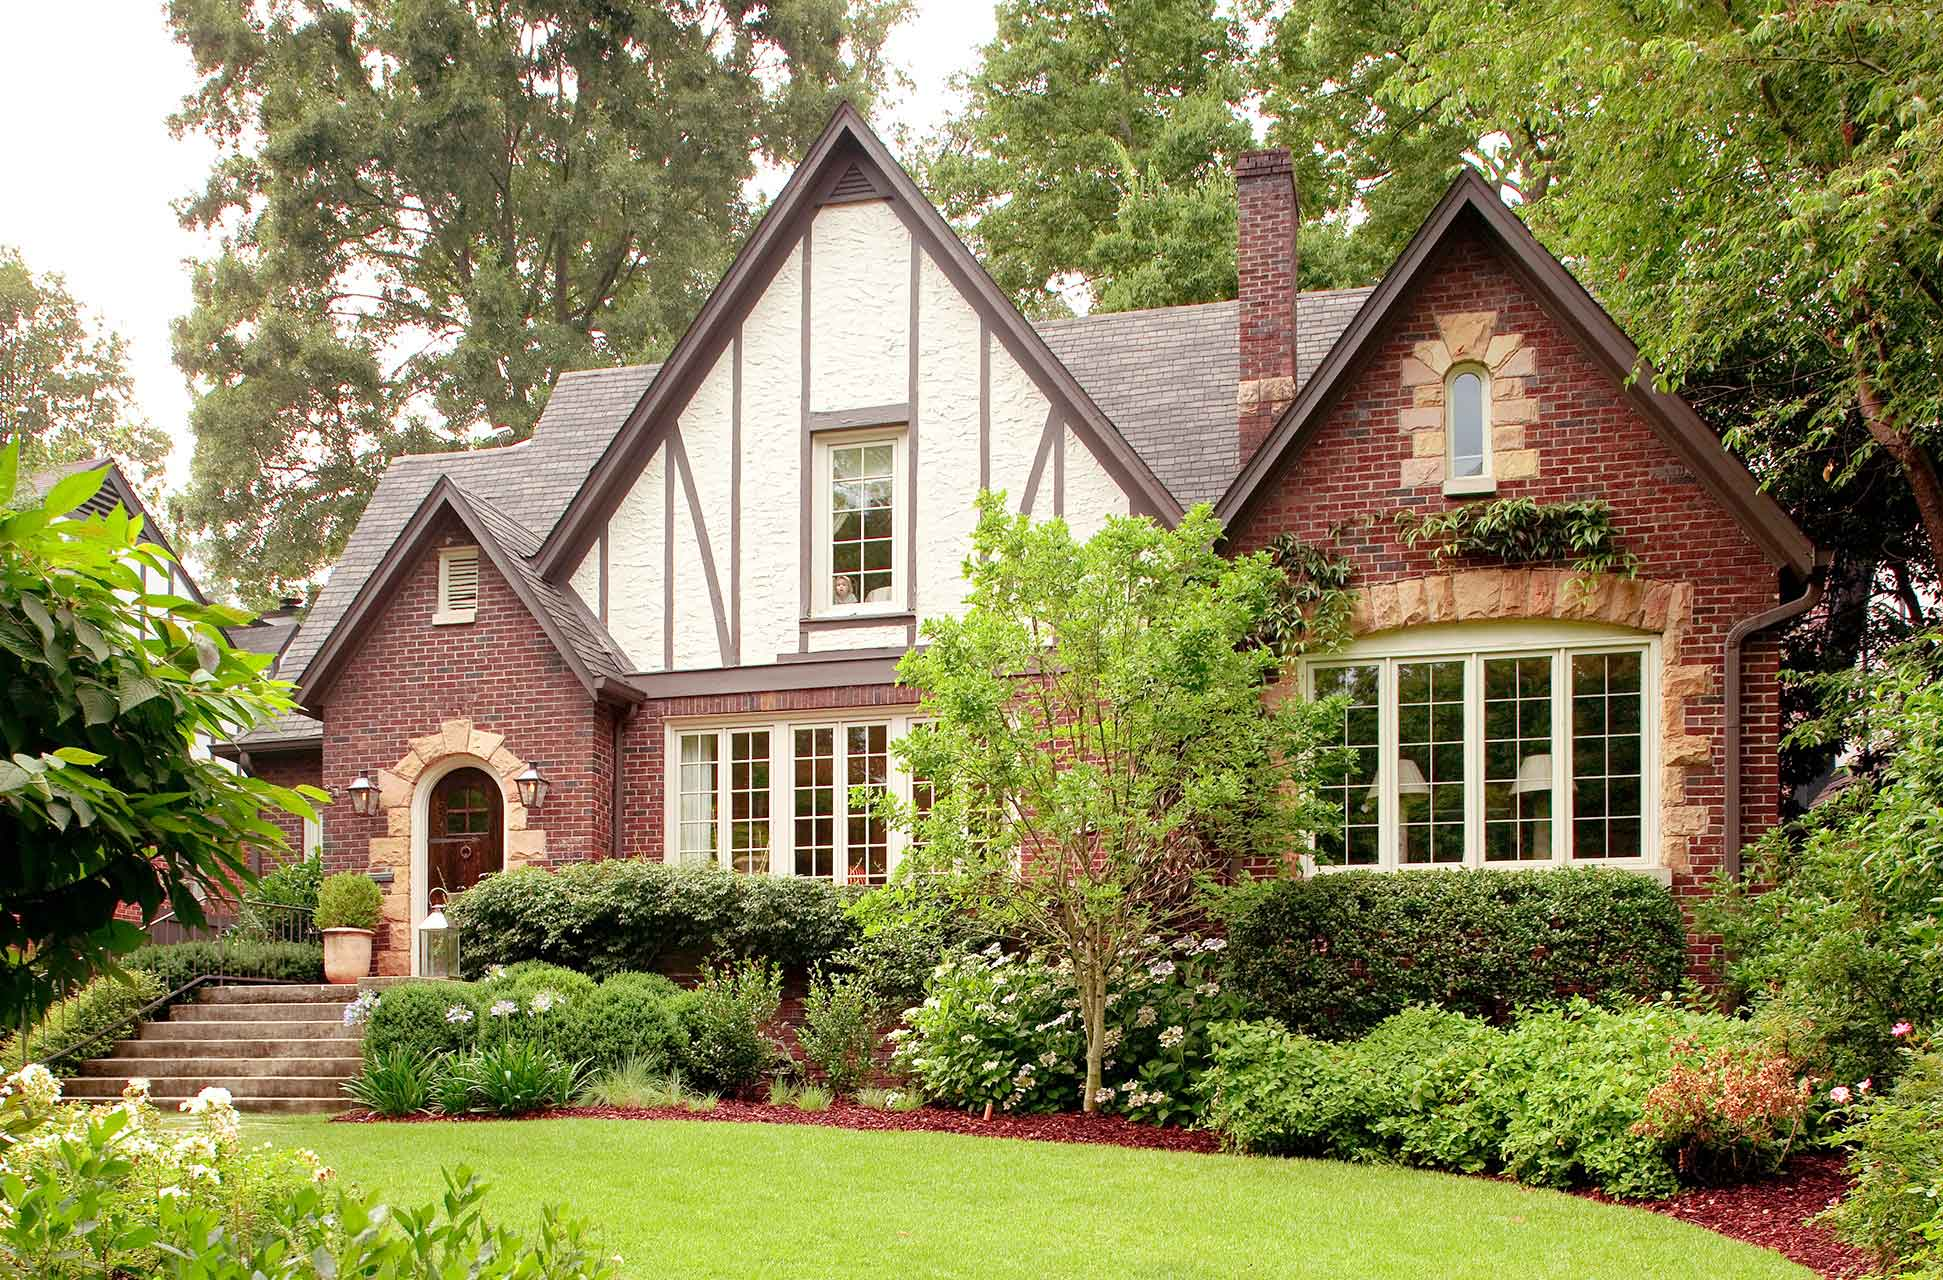 Home style 365 5